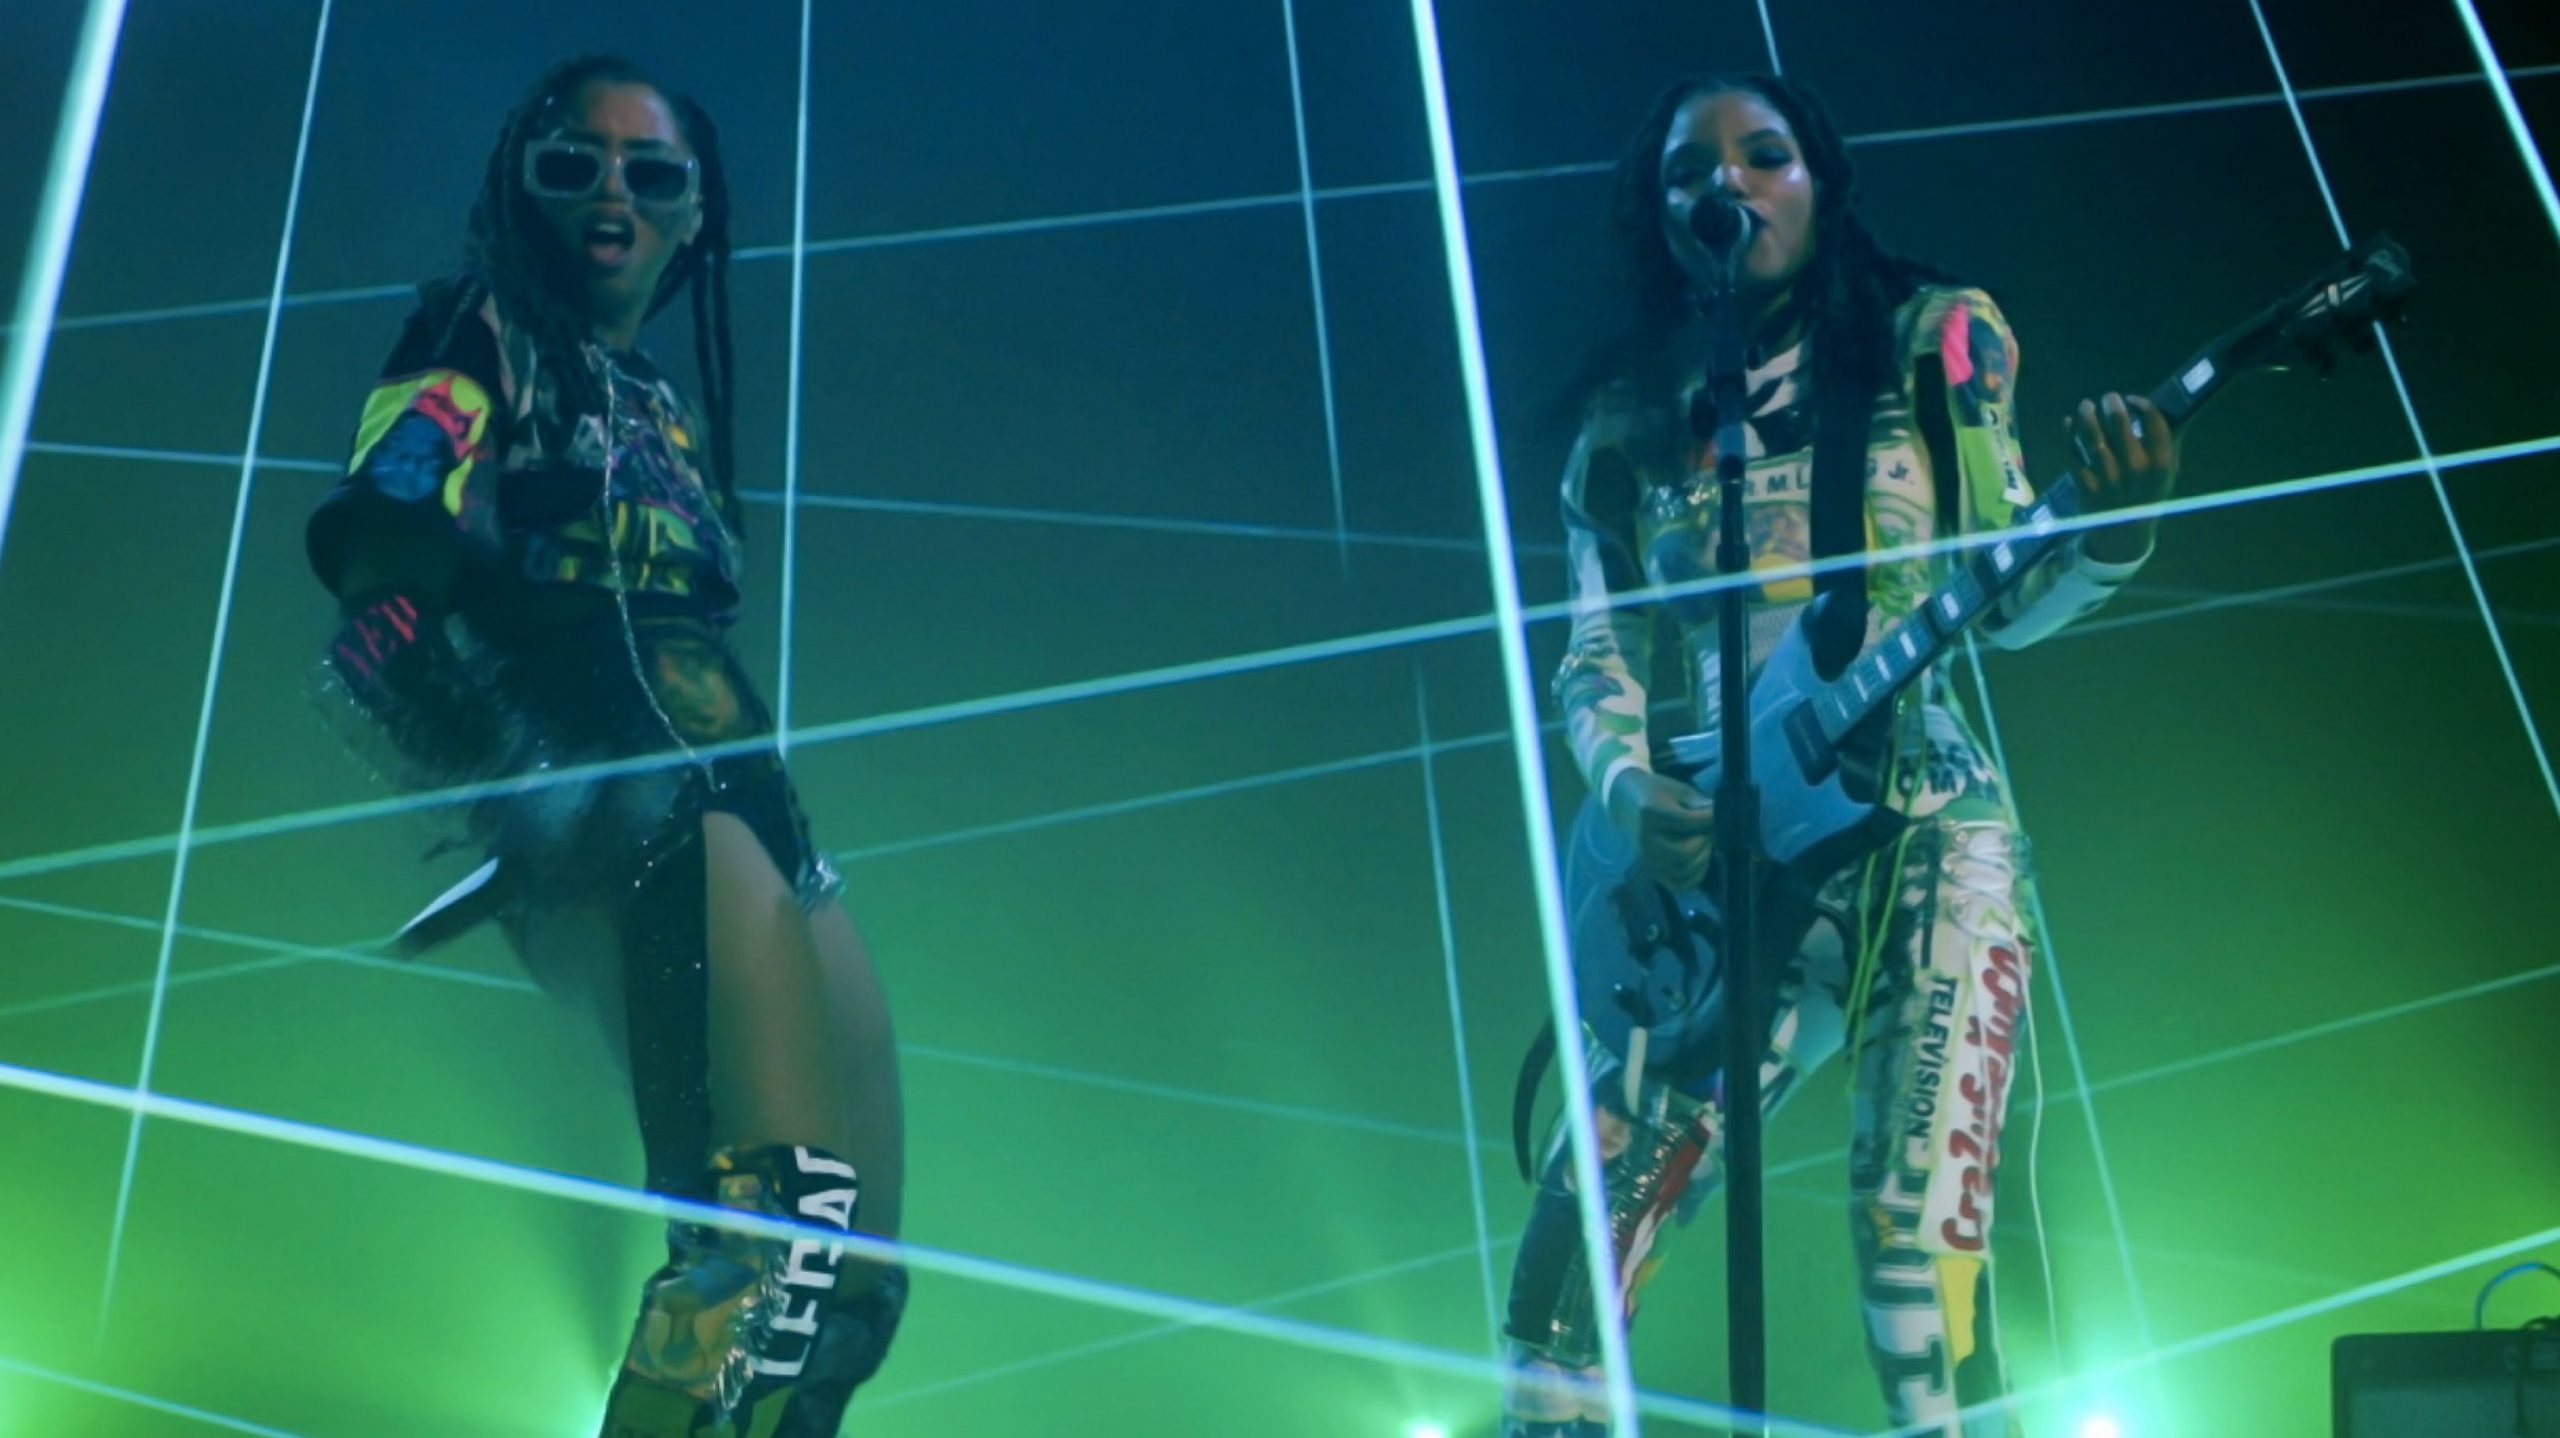 lazer show video performance shoot on sound stages in los angeles for chloe x halle